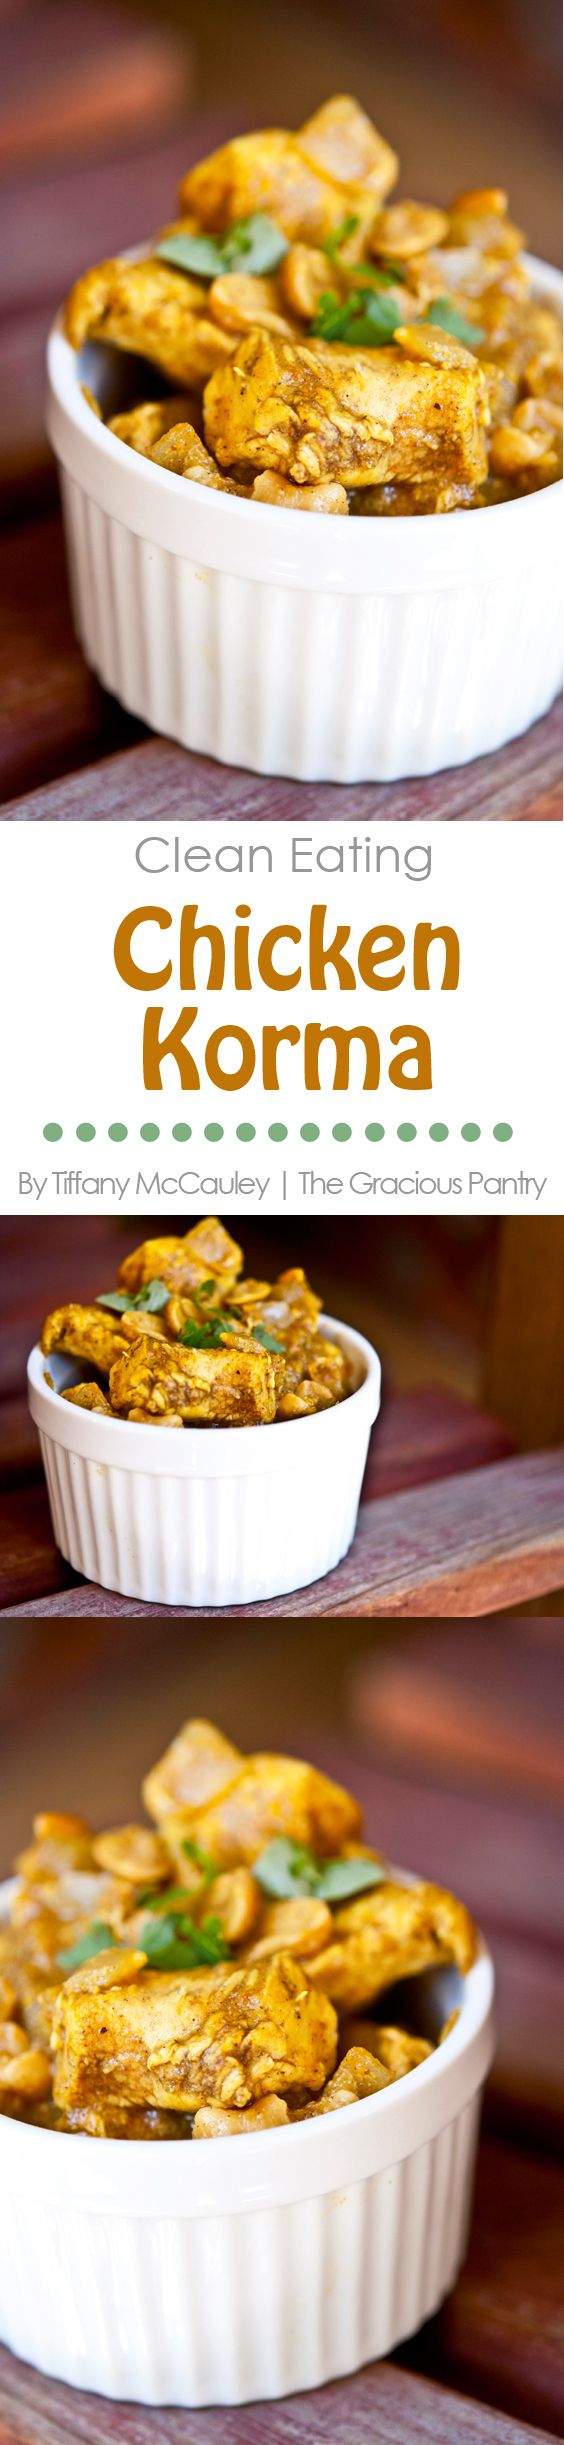 Clean Eating Recipes | Chicken Korma | Healthy Recipes | Dinner Recipes | Indian Food